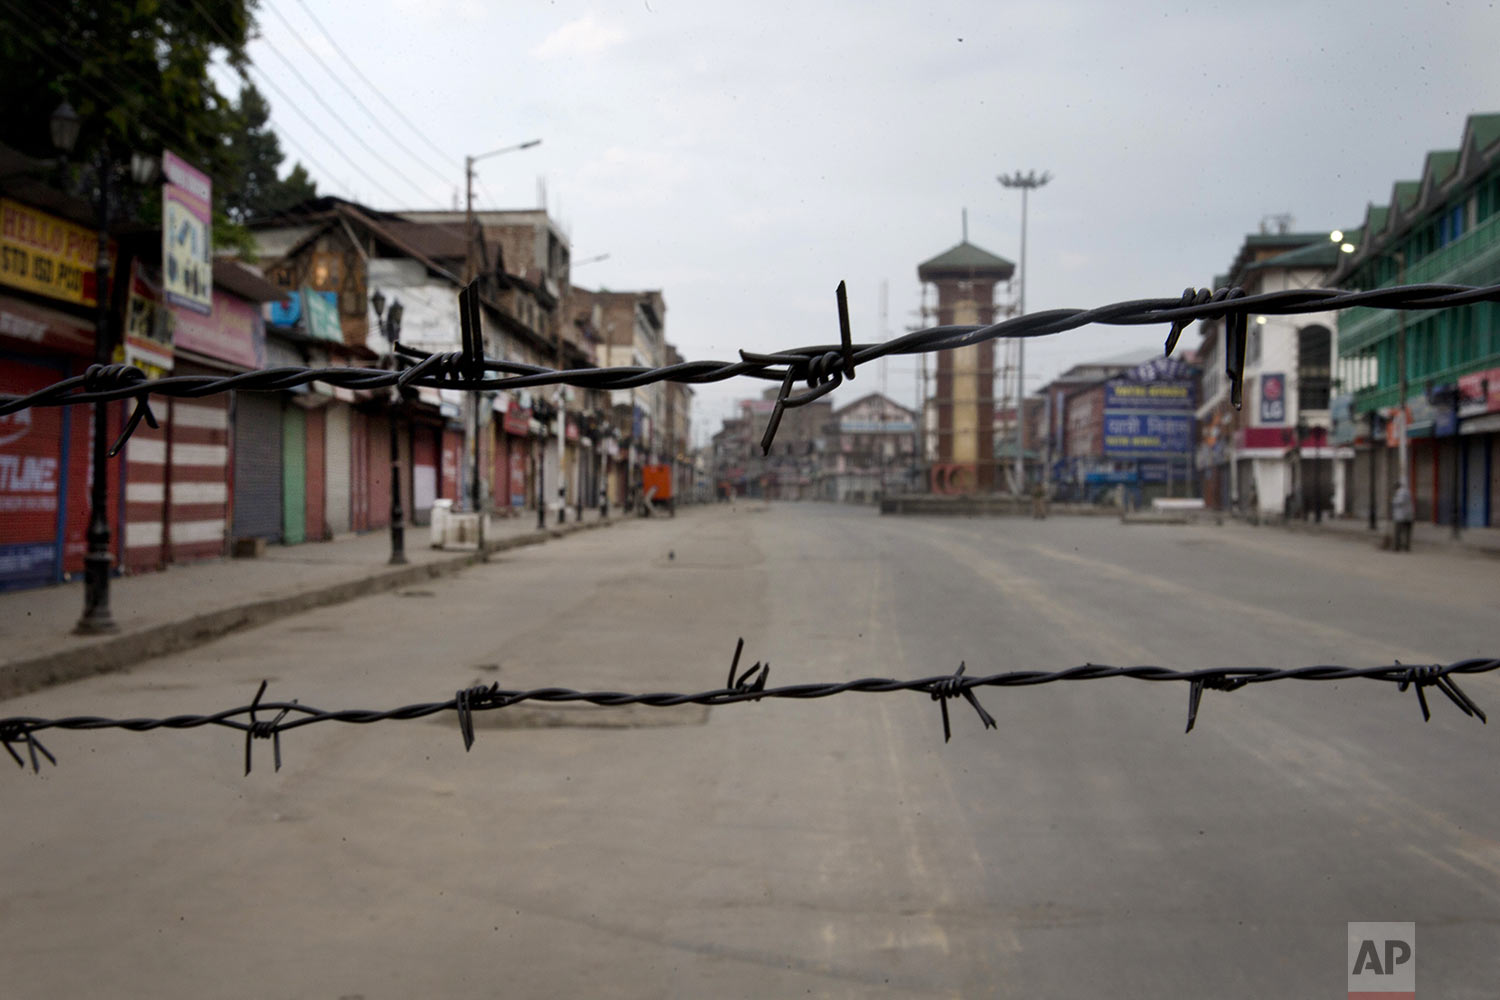 A deserted street is seen through a barbwire set up as blockade during curfew in Srinagar, Indian controlled Kashmir, Tuesday, Aug. 6, 2019. (AP Photo/Dar Yasin)